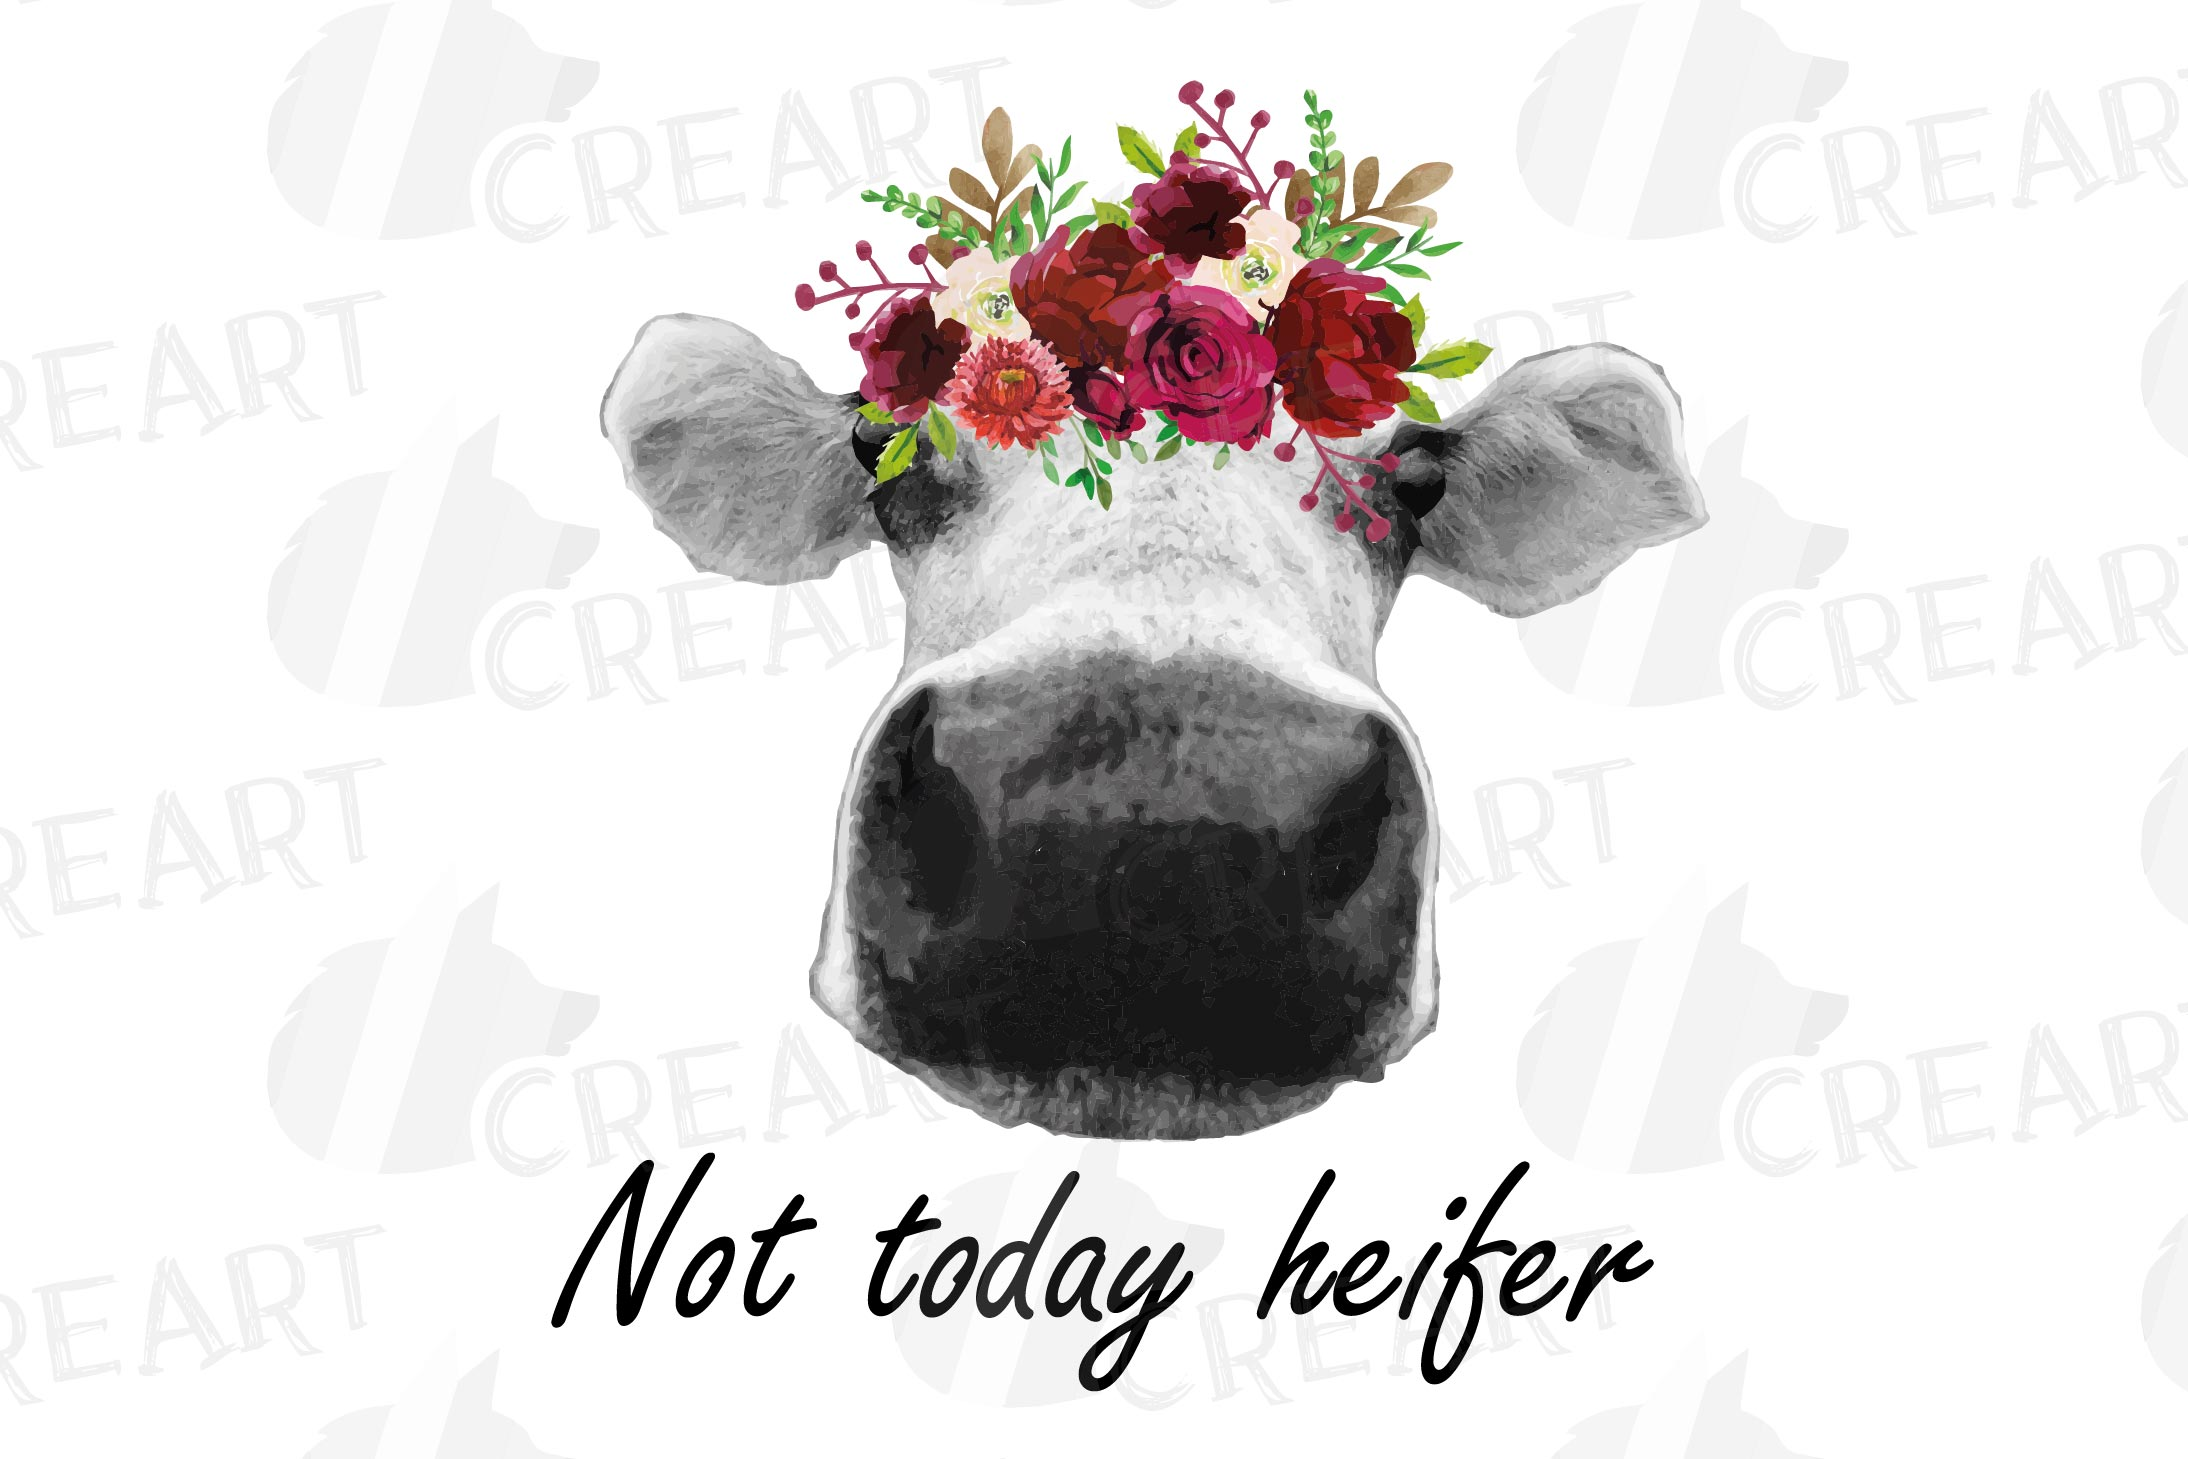 Not today Heifer printable floral burgundy decor, floral cow example image 19